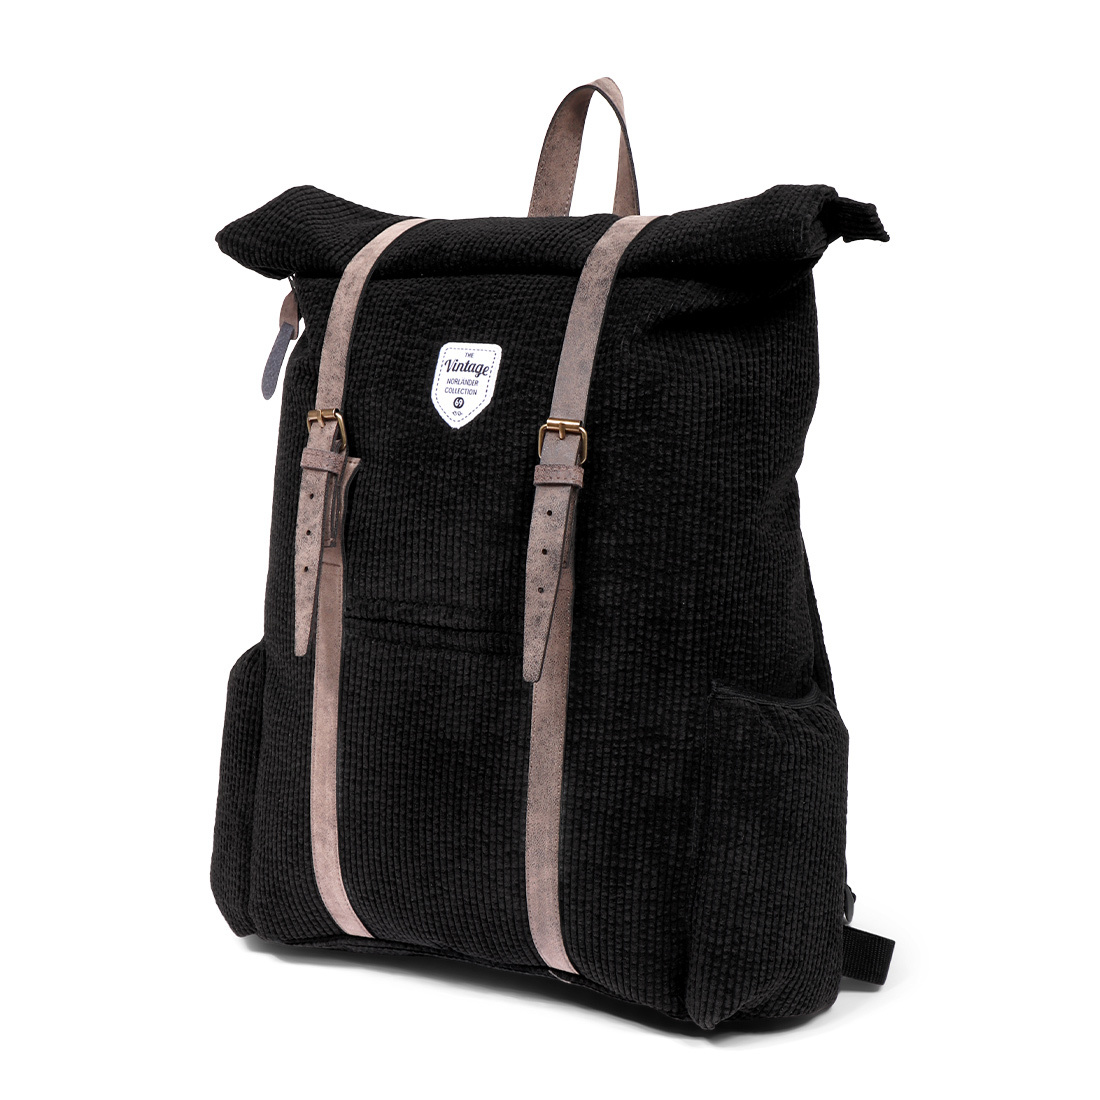 Vintage Ribble Backpack Black